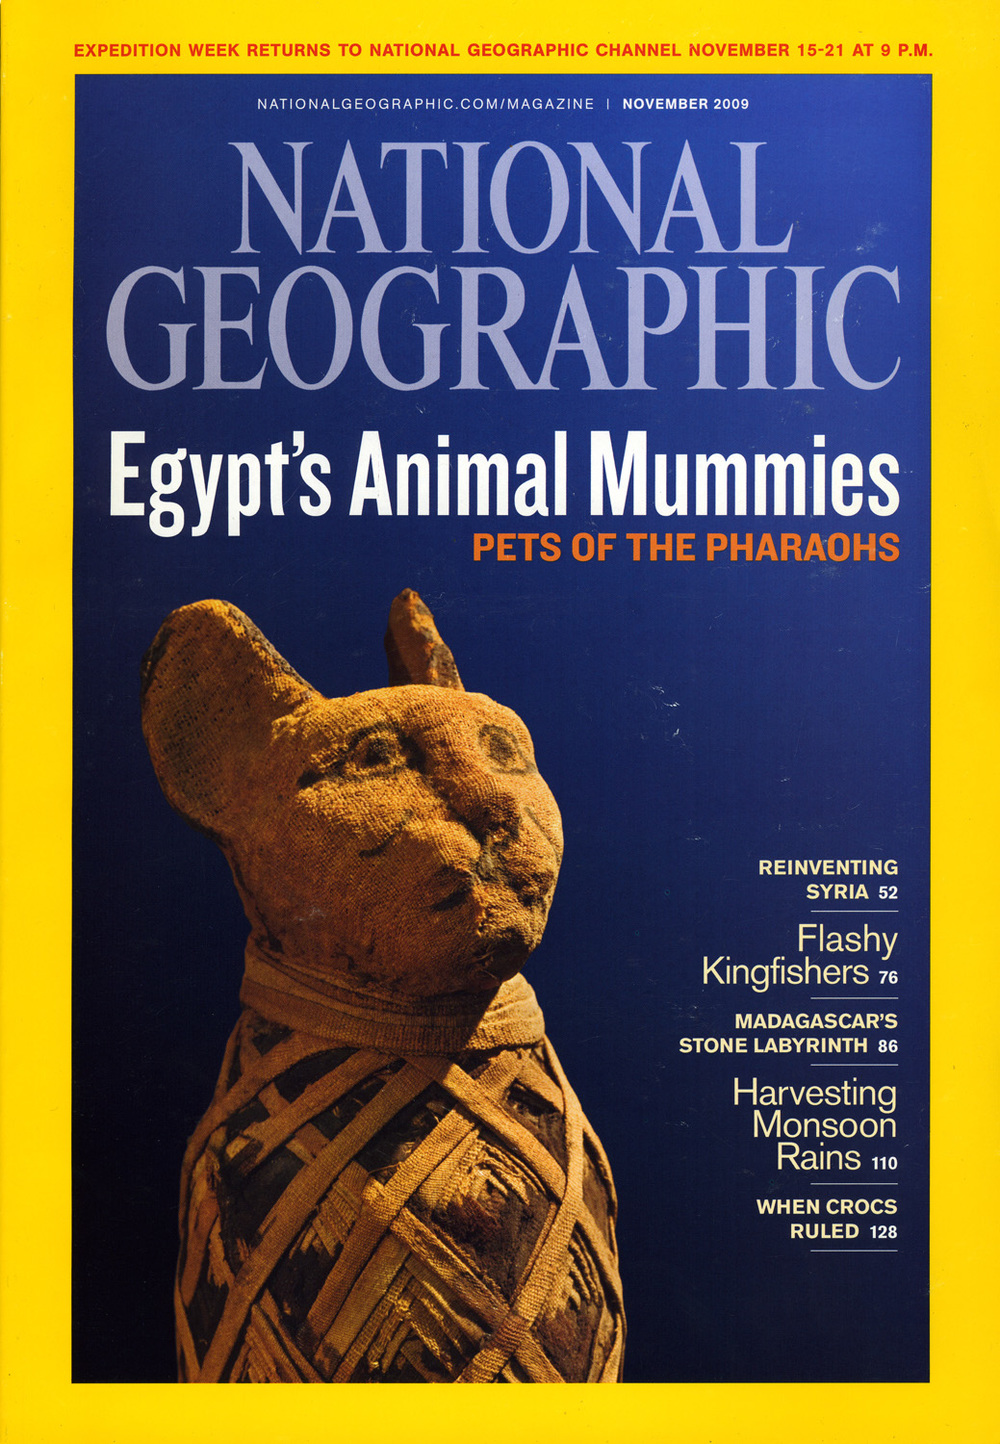 animalmummies_001.jpg